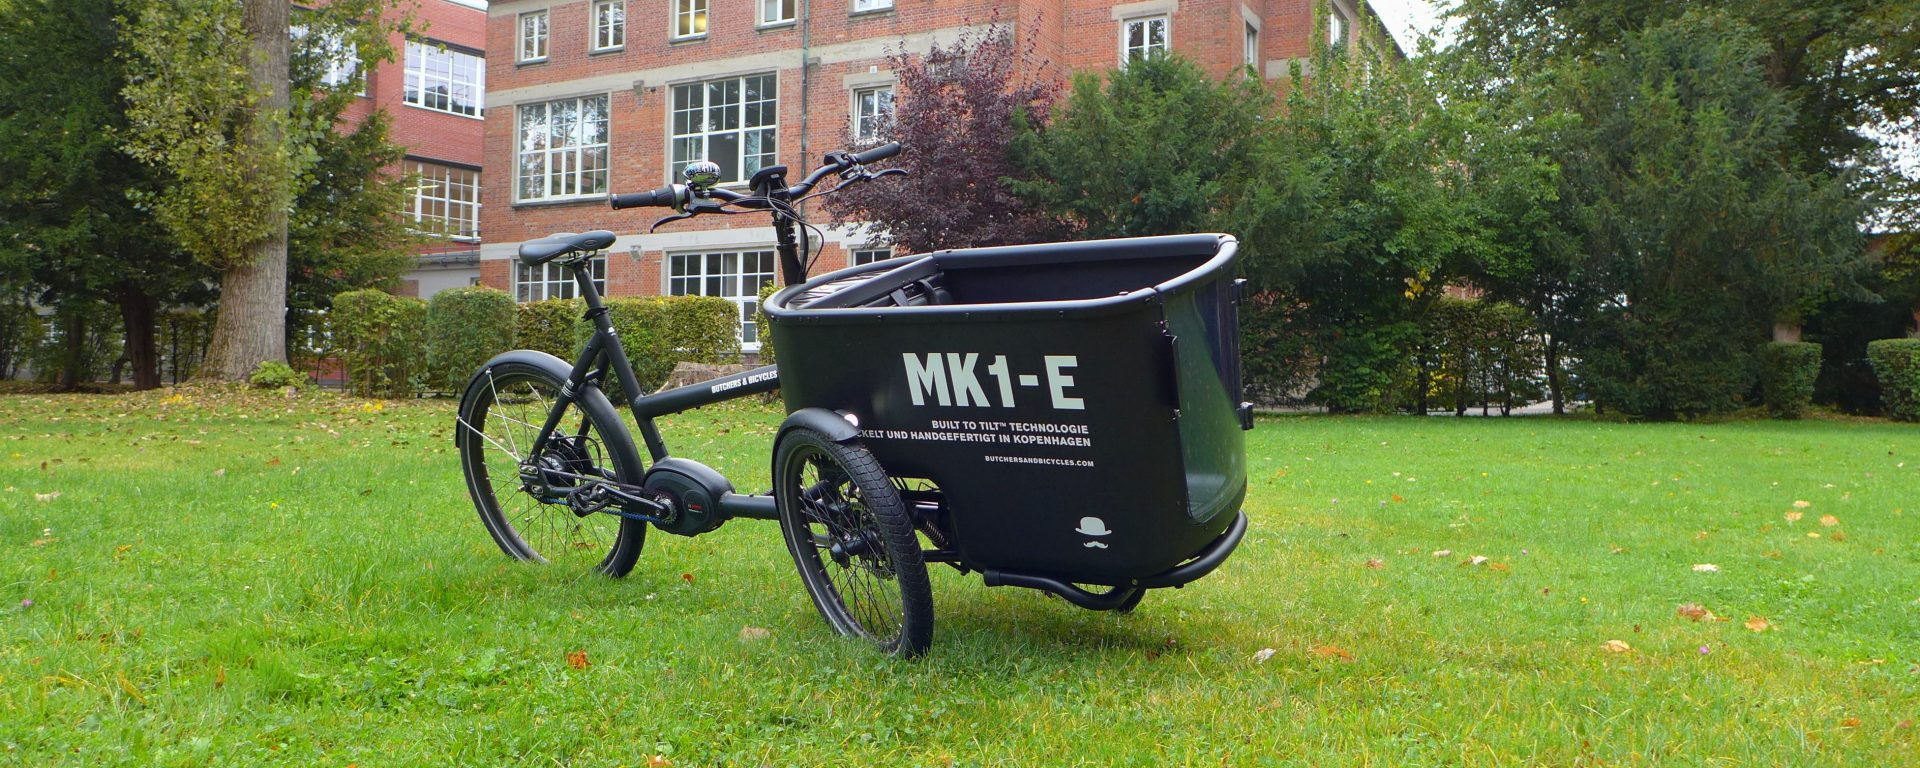 The butchers and bicylces - mk1-e